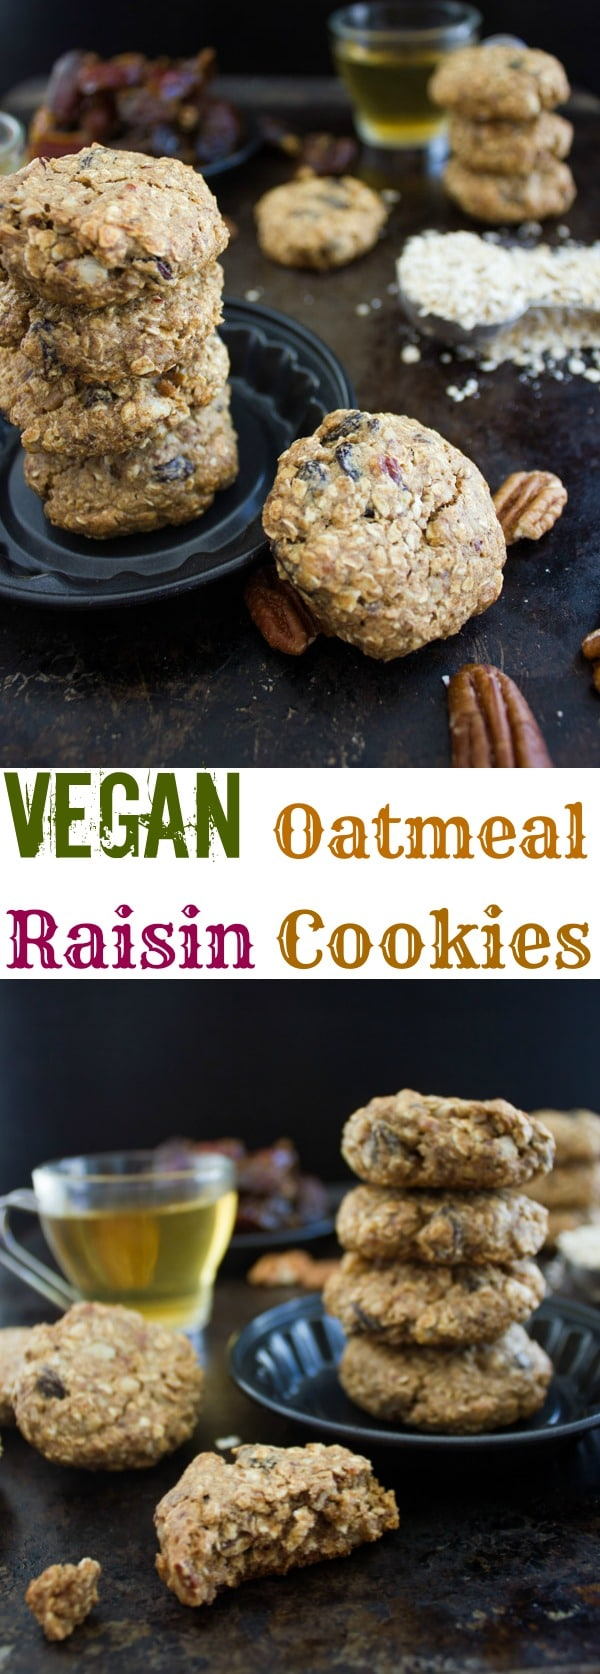 My vegan oatmeal raisin cookies are a healthy, gluten-free twist on everyone's favorite breakfast cookie. An easy-to-make, wholesome, naturally sweetened oatmeal cookie perfect for fuelling your day!#cookierecipes, #oatmealcookies, #oatmealraisincookies, #veganbaking